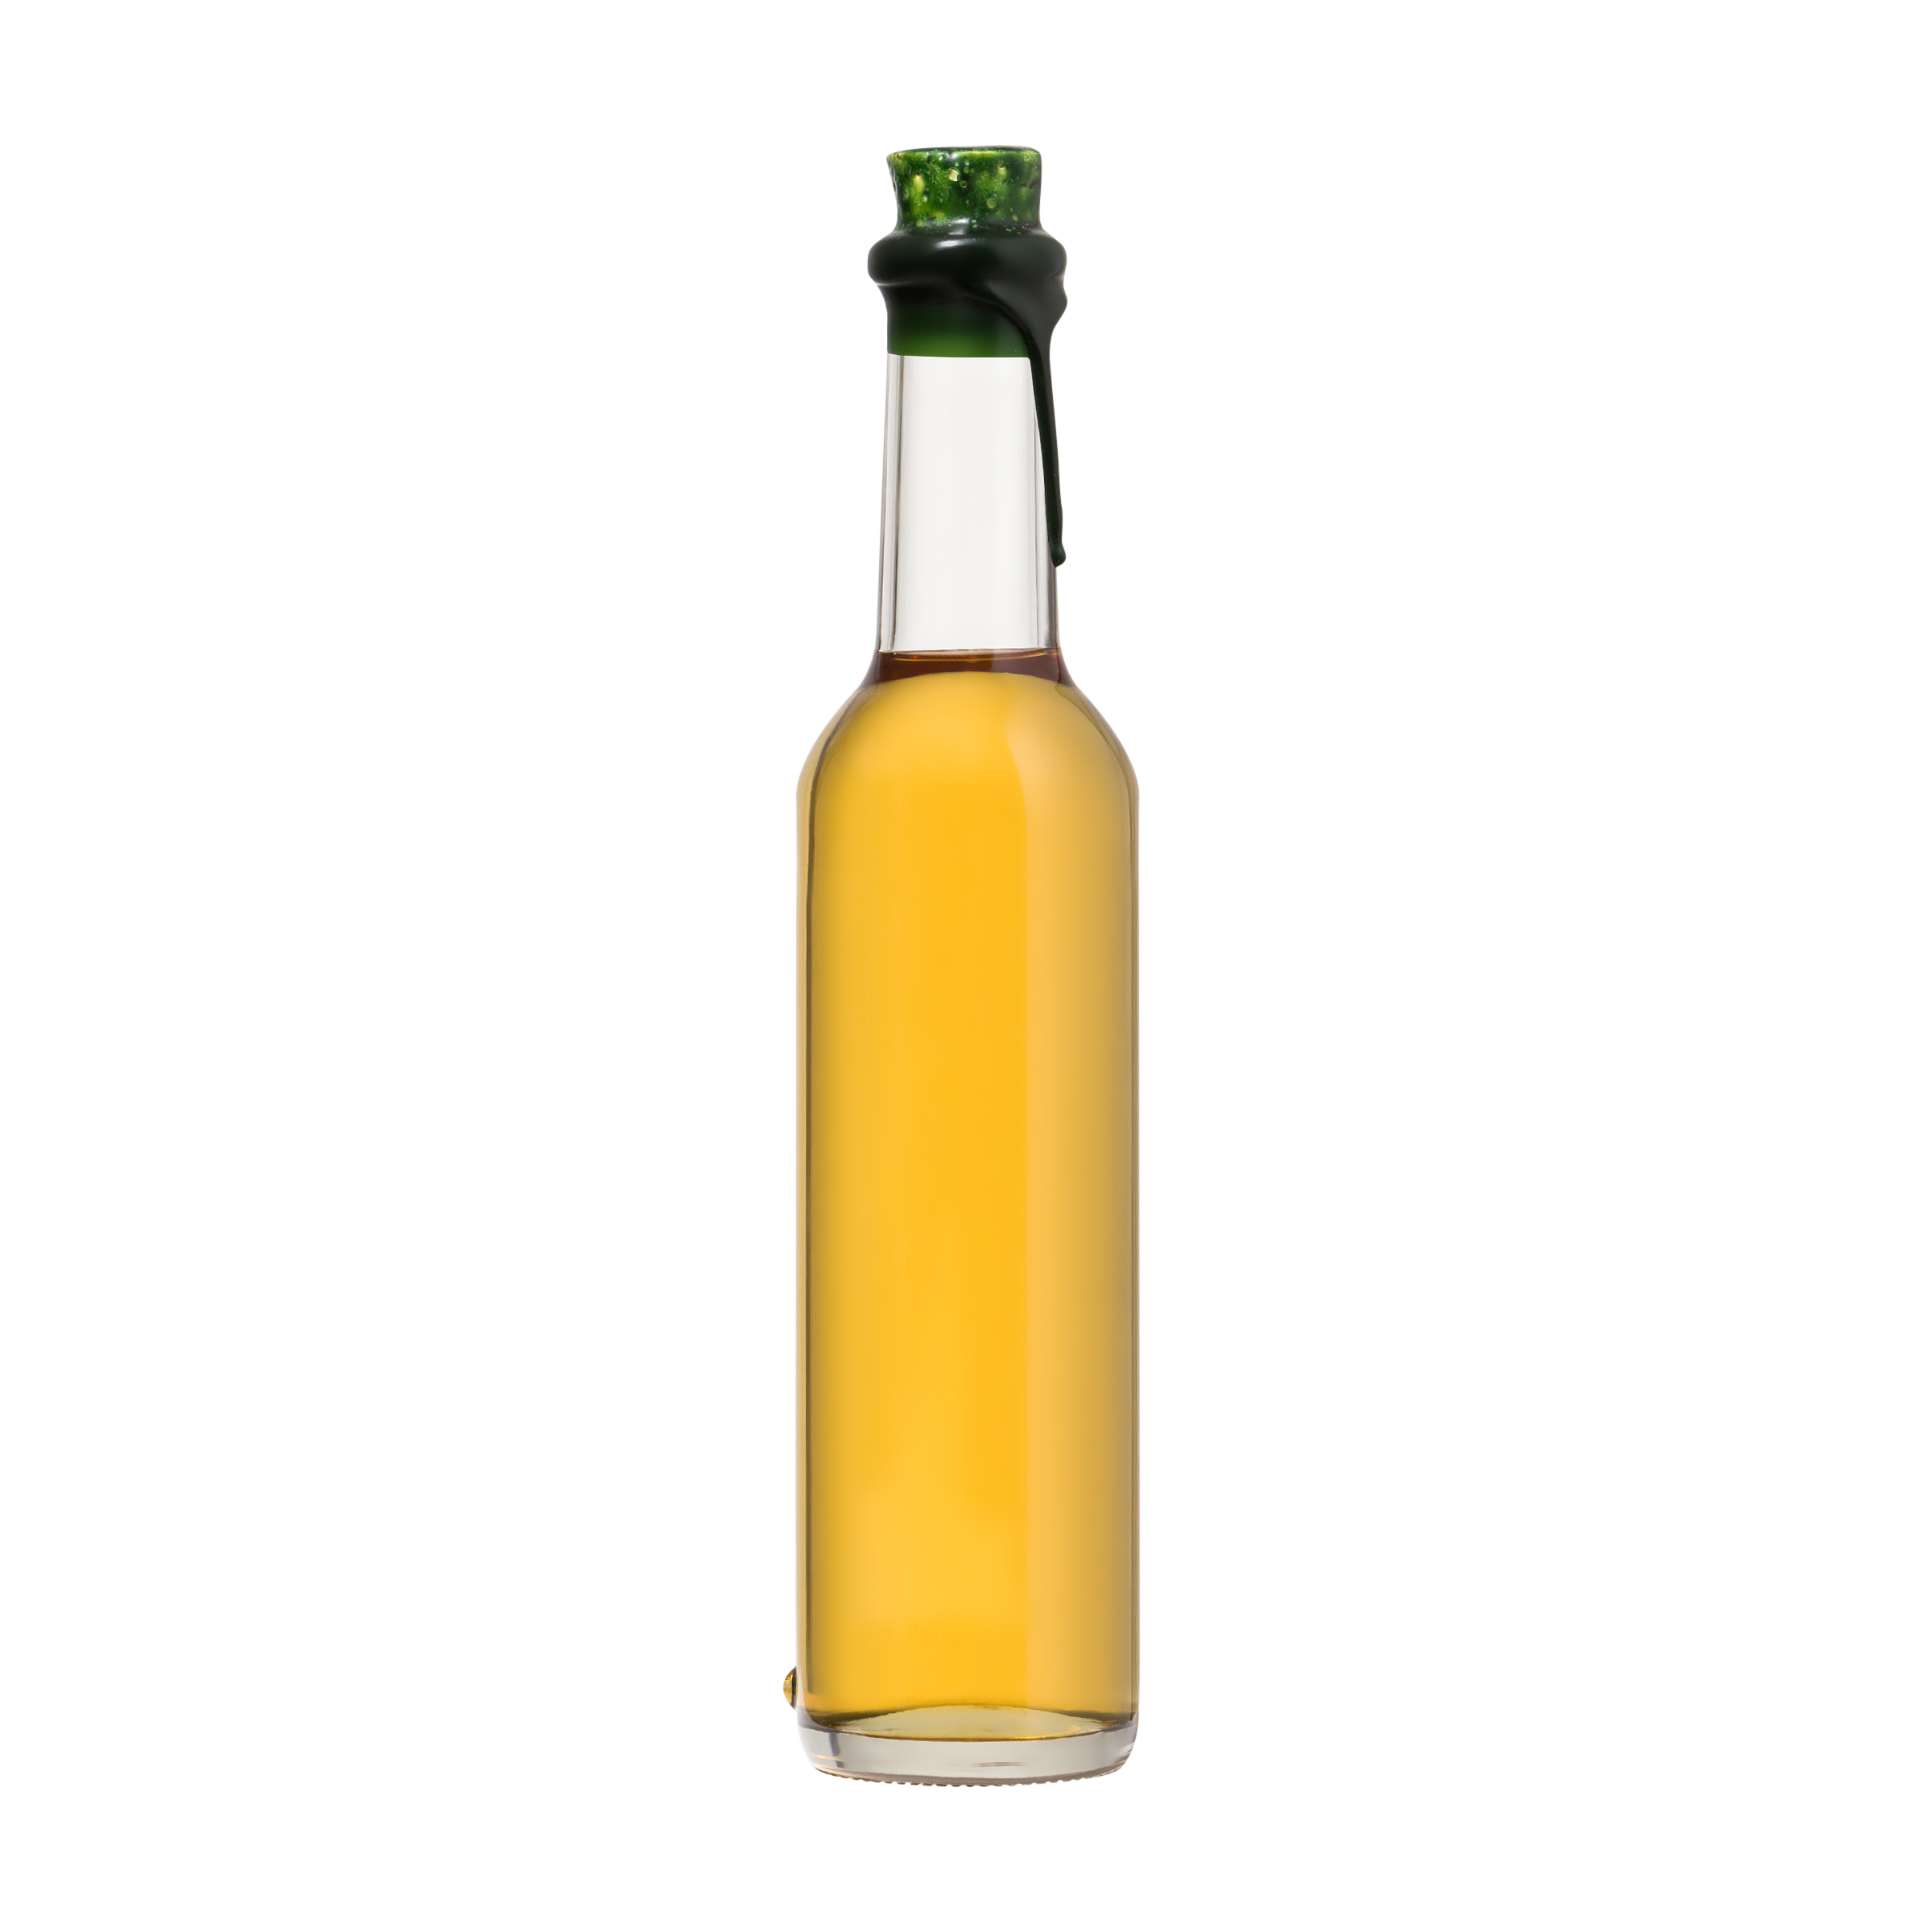 bottle product image